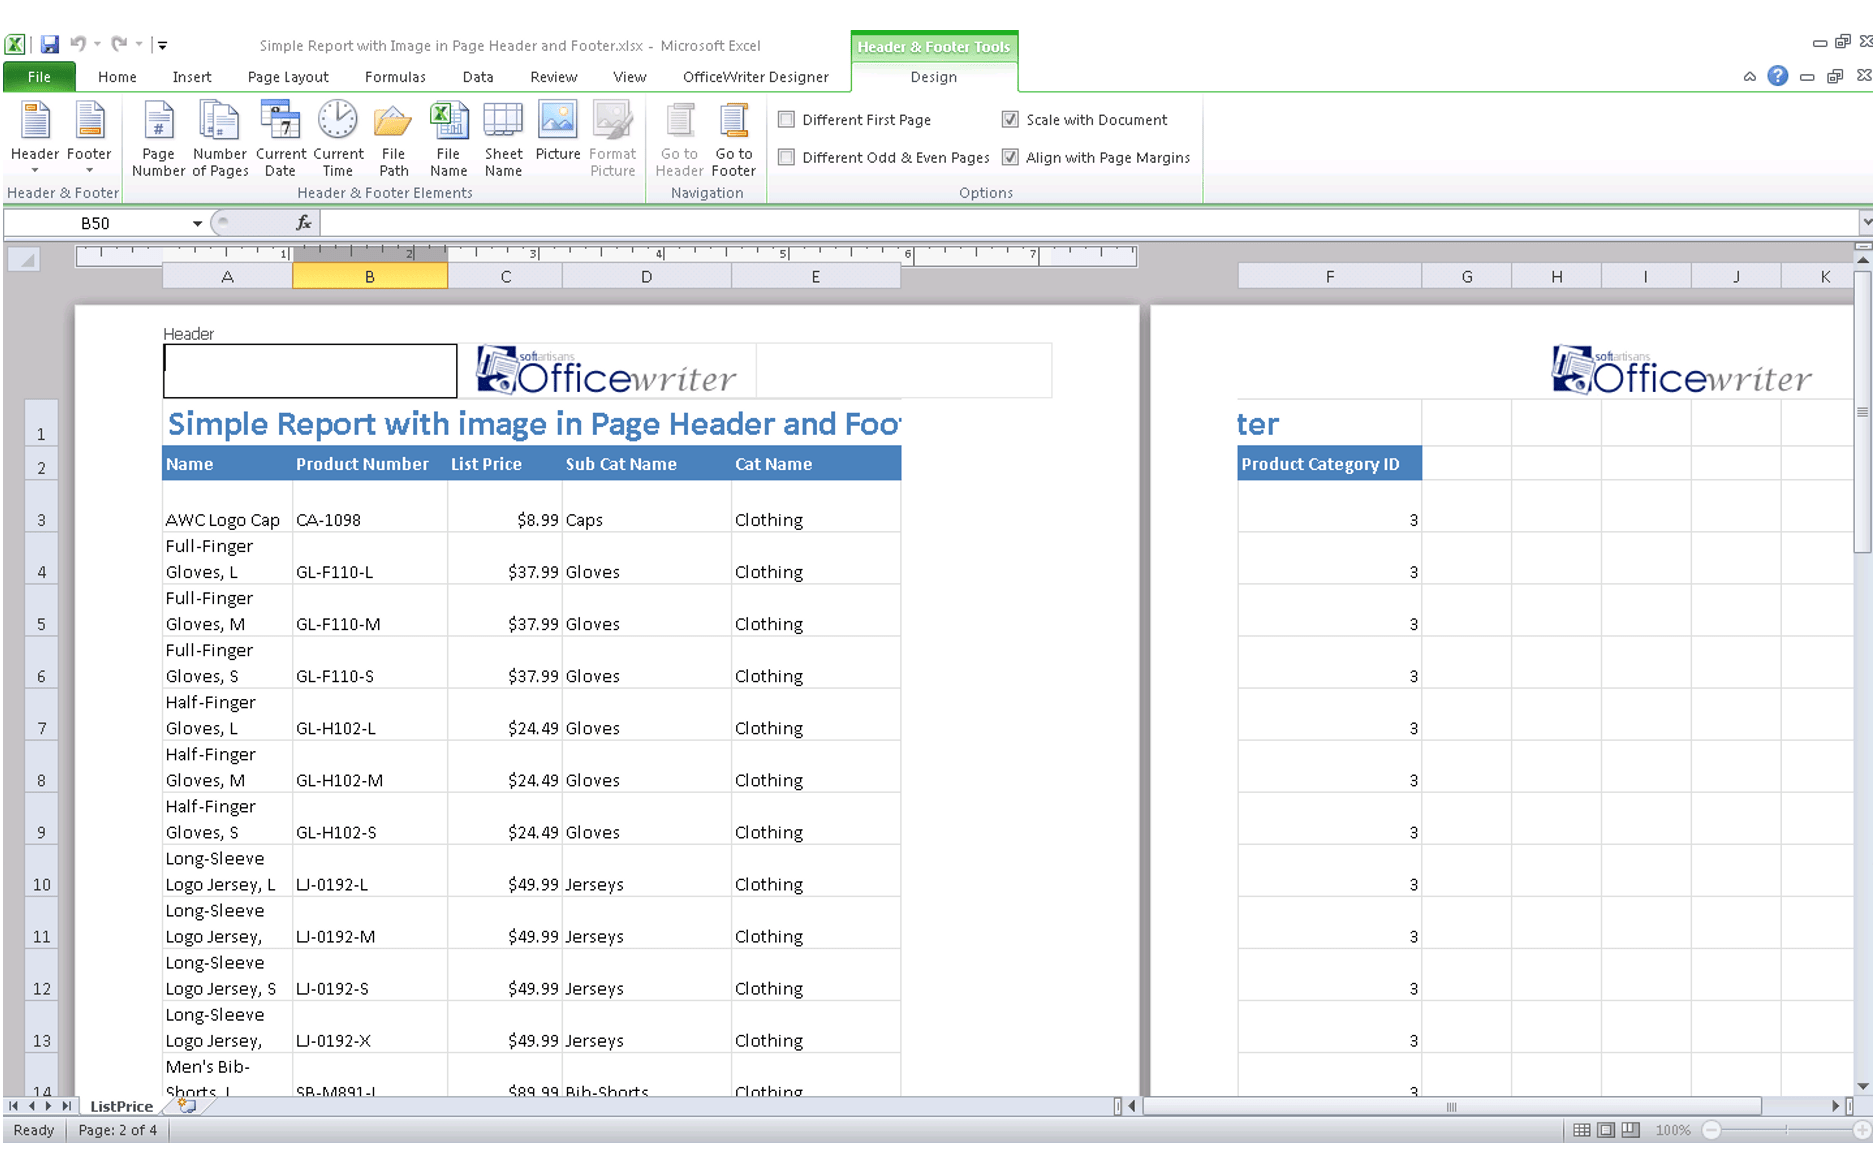 Comparing Excel Export Functionality In Ssrs To Officewriter